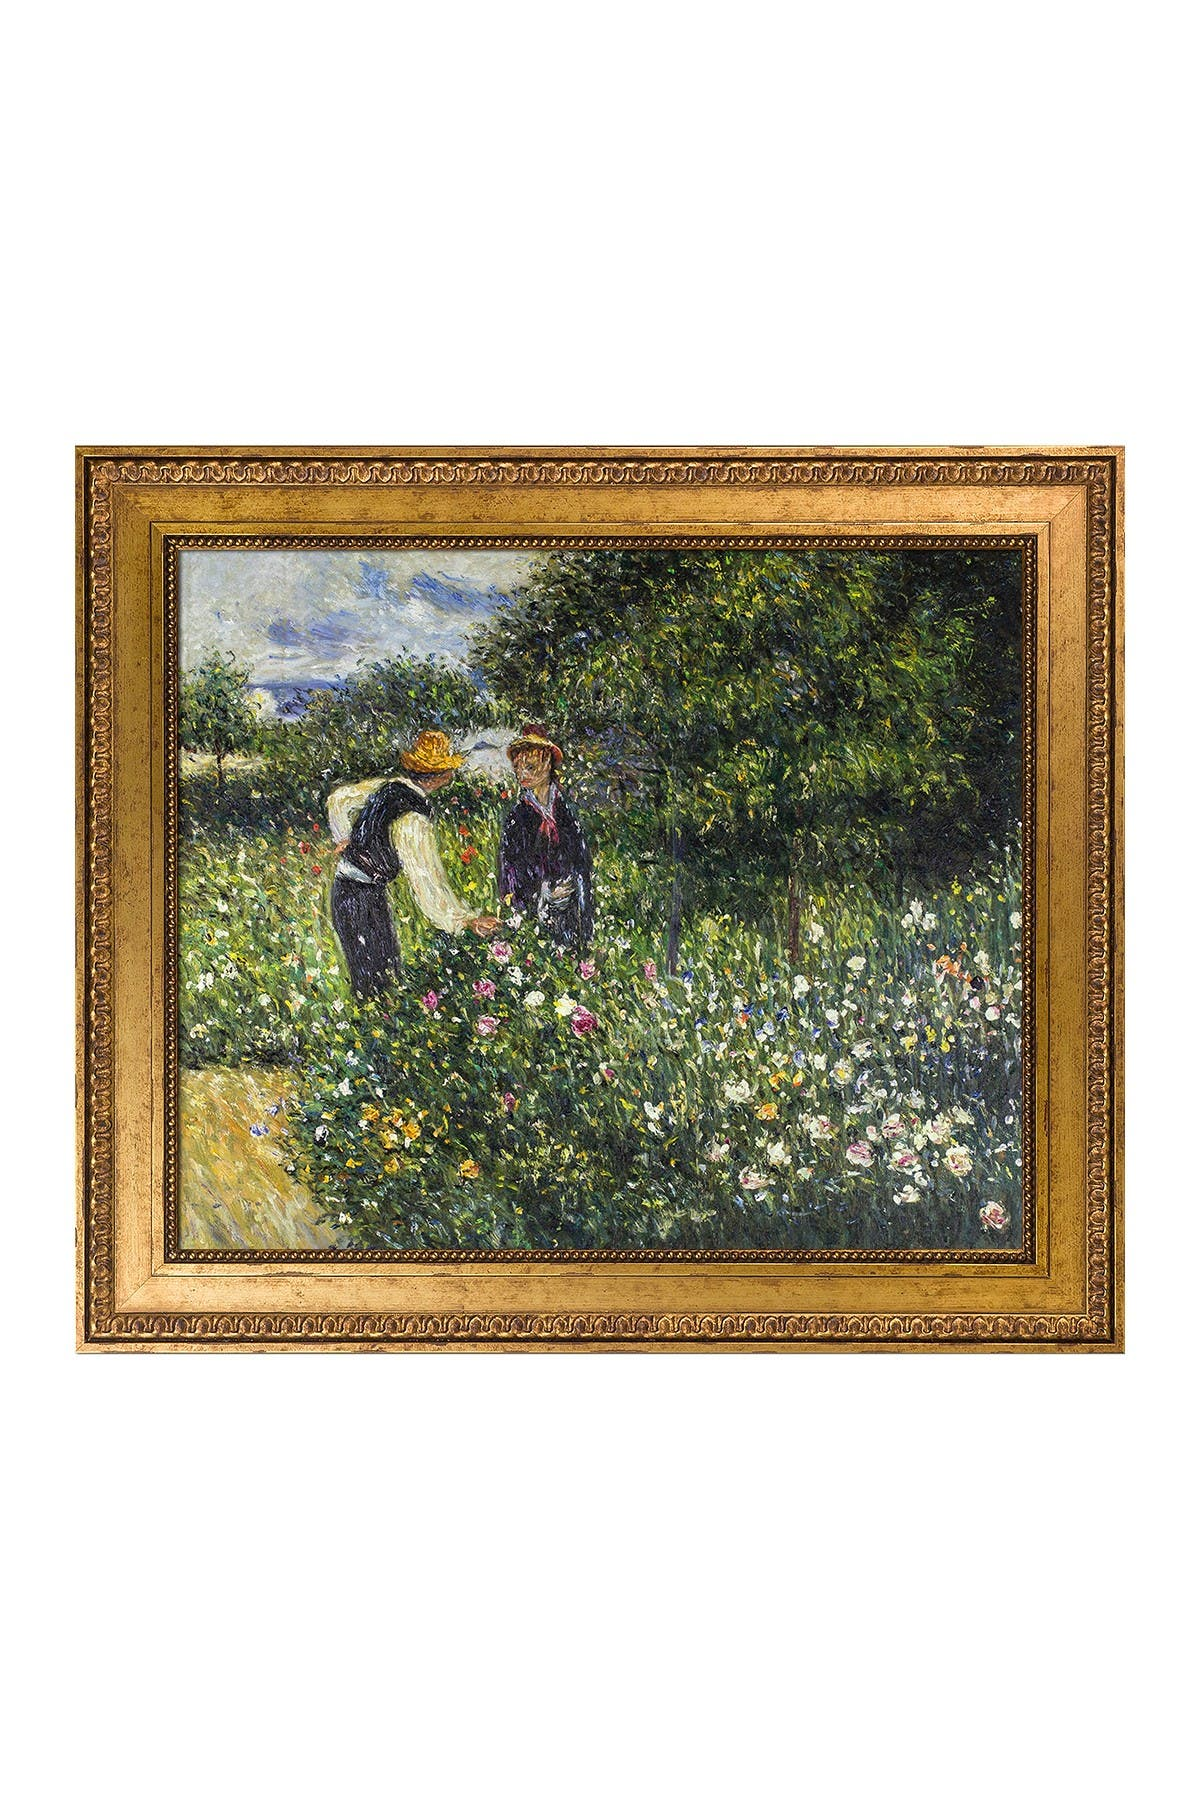 Image of Overstock Art Picking Flowers, 1875 - Framed Oil Reproduction of an Original Painting By Pierre-Auguste Renoir